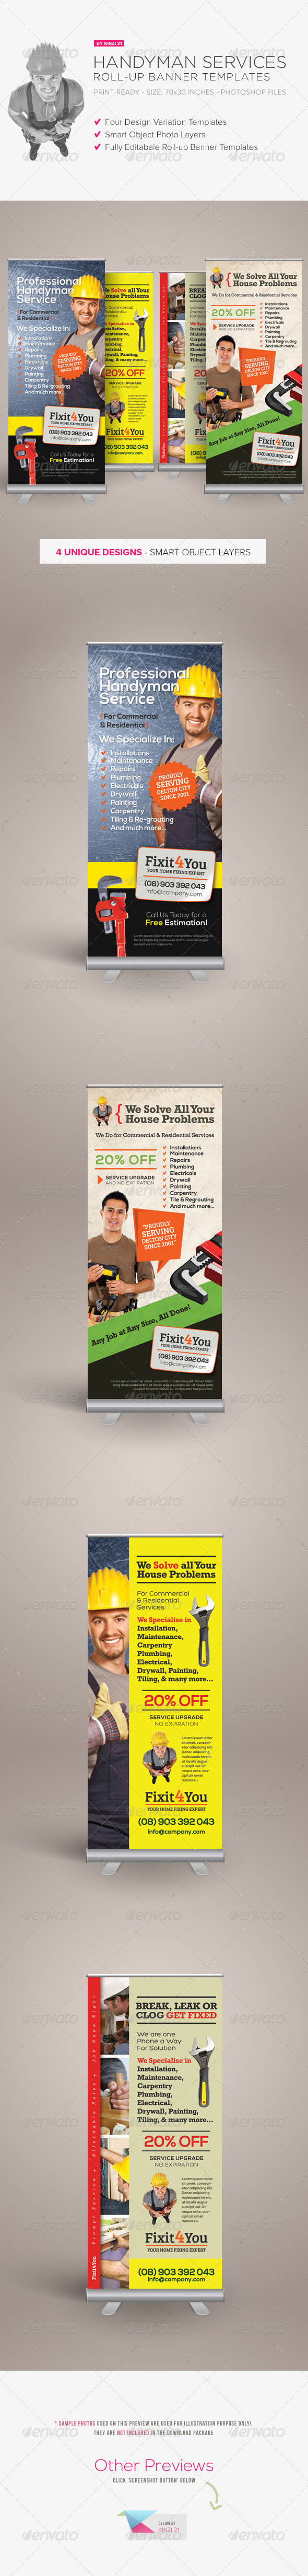 GraphicRiver Handyman Services Roll-up Banners 8143394